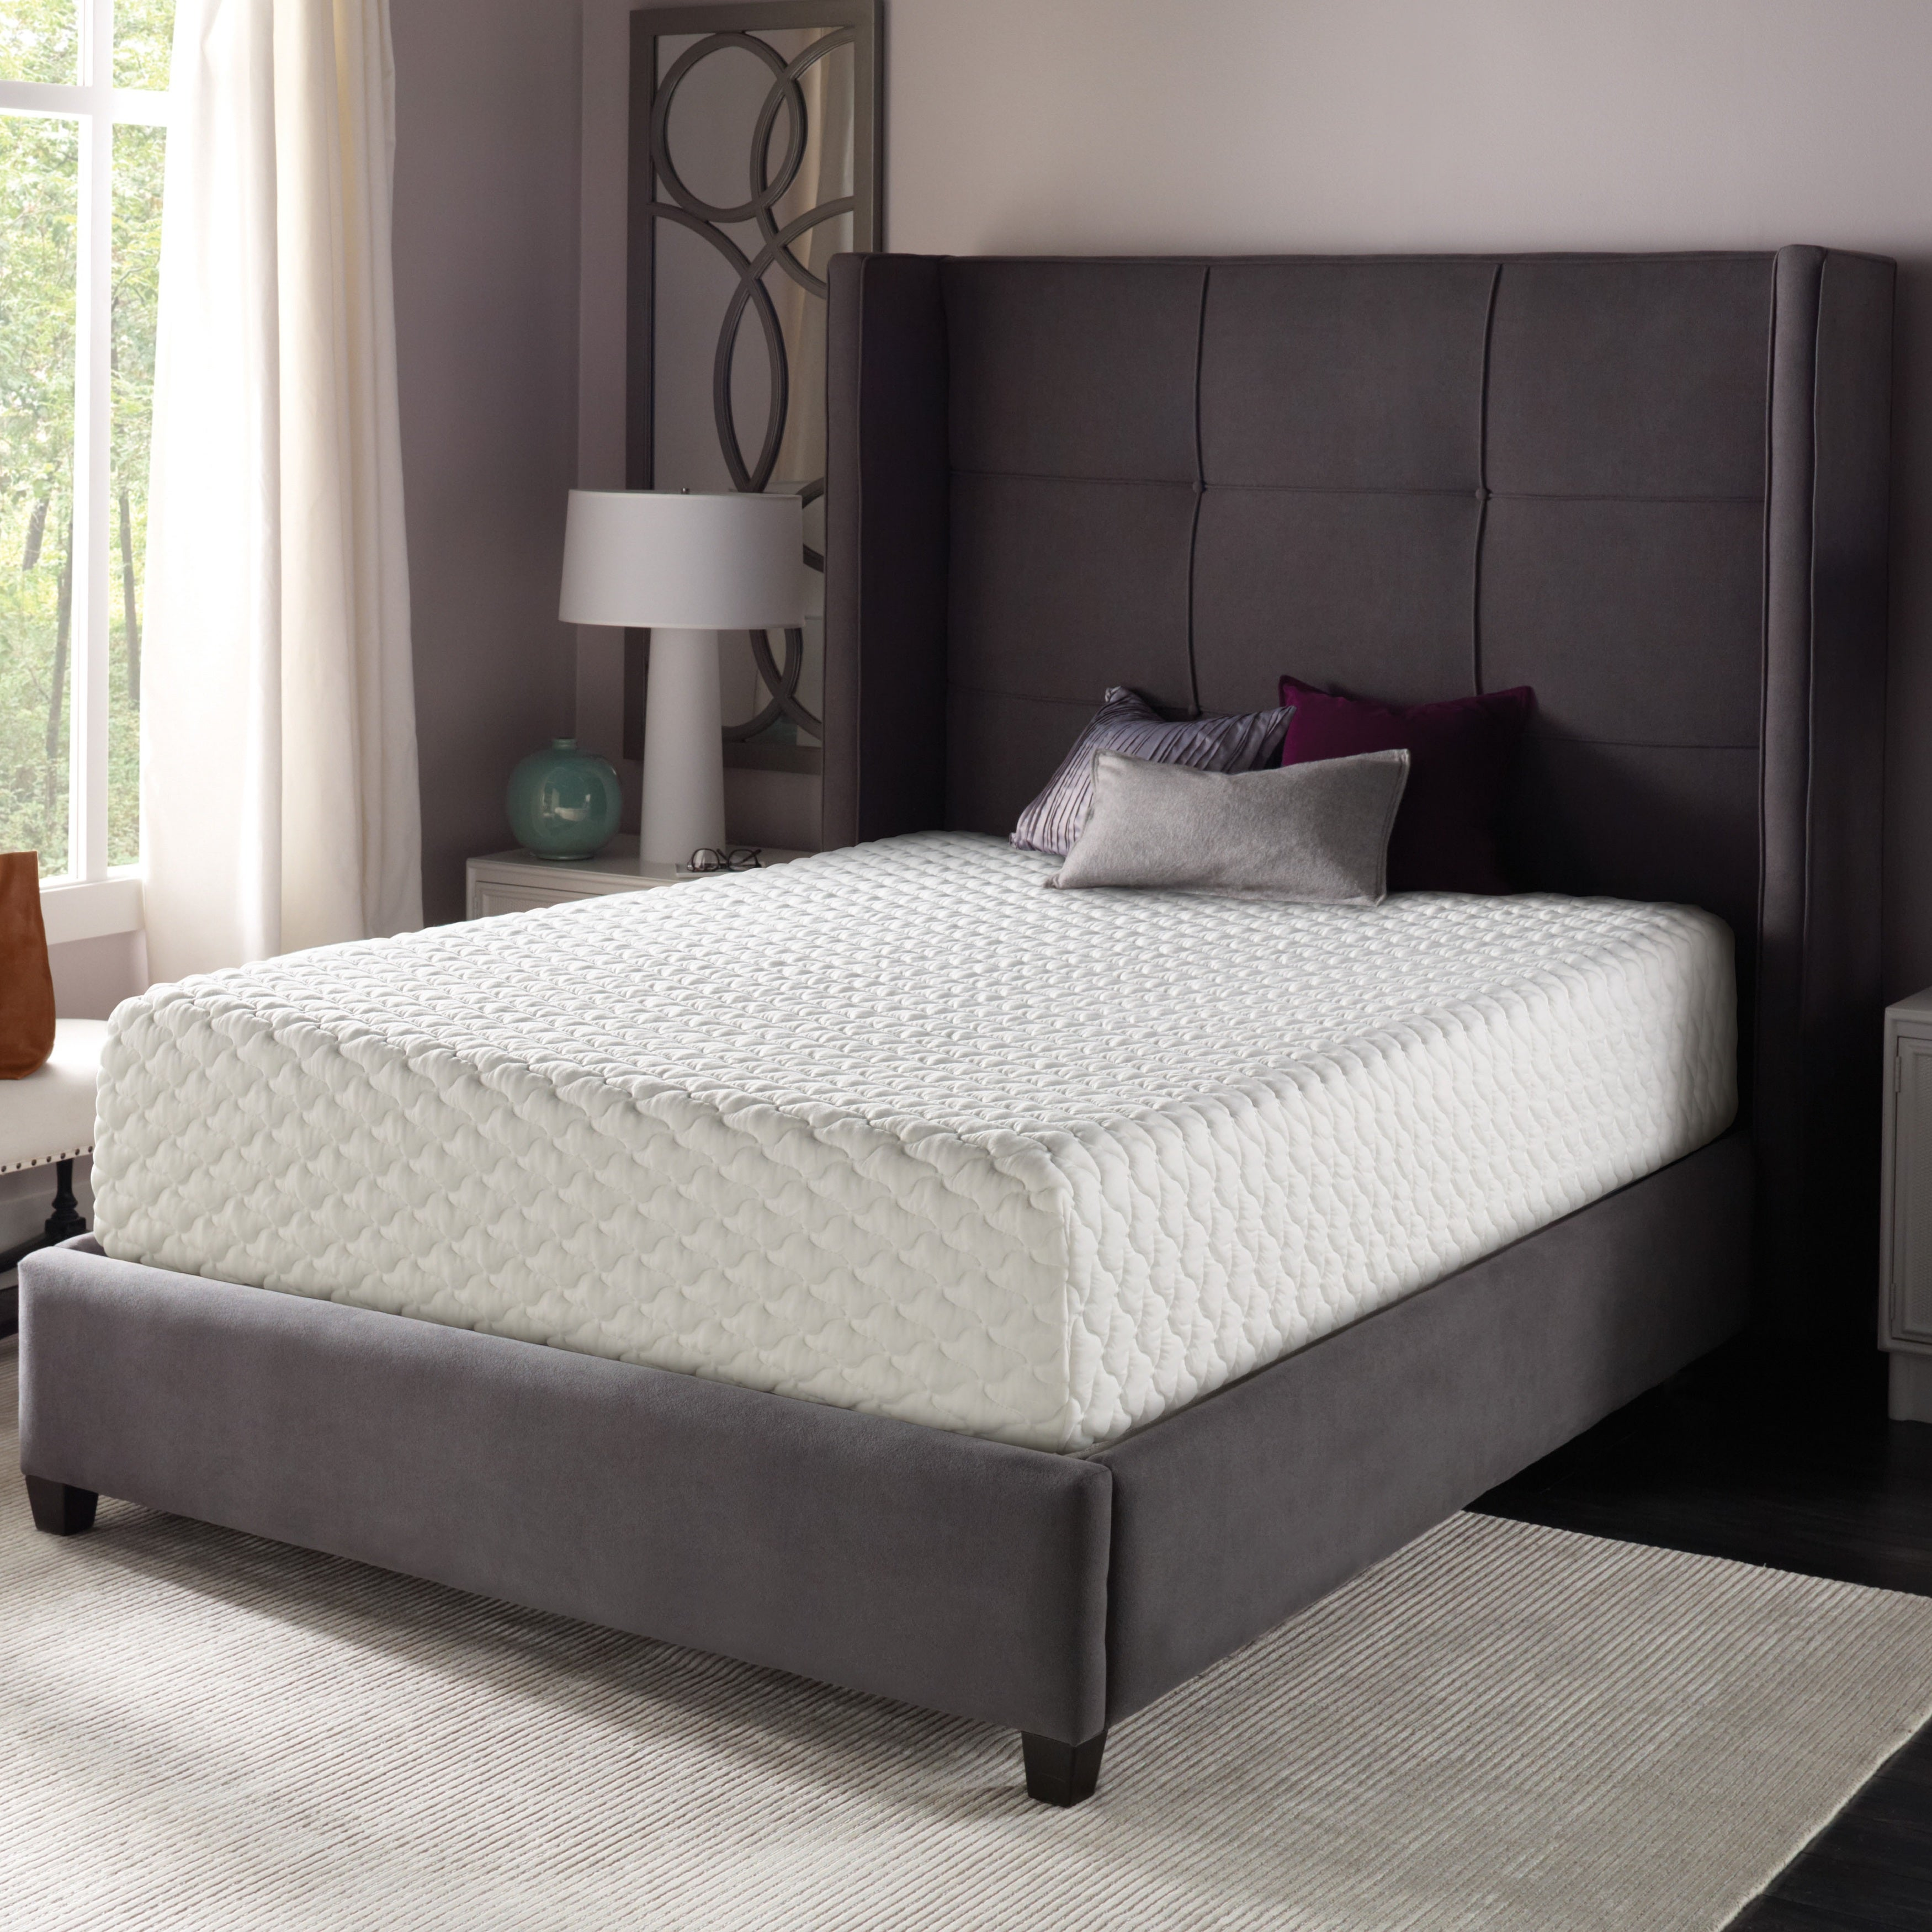 mattress in a box. Shop Beautyrest 12-inch Queen-size Gel Memory Foam Mattress In A Box - On Sale Free Shipping Today Overstock.com 17617960